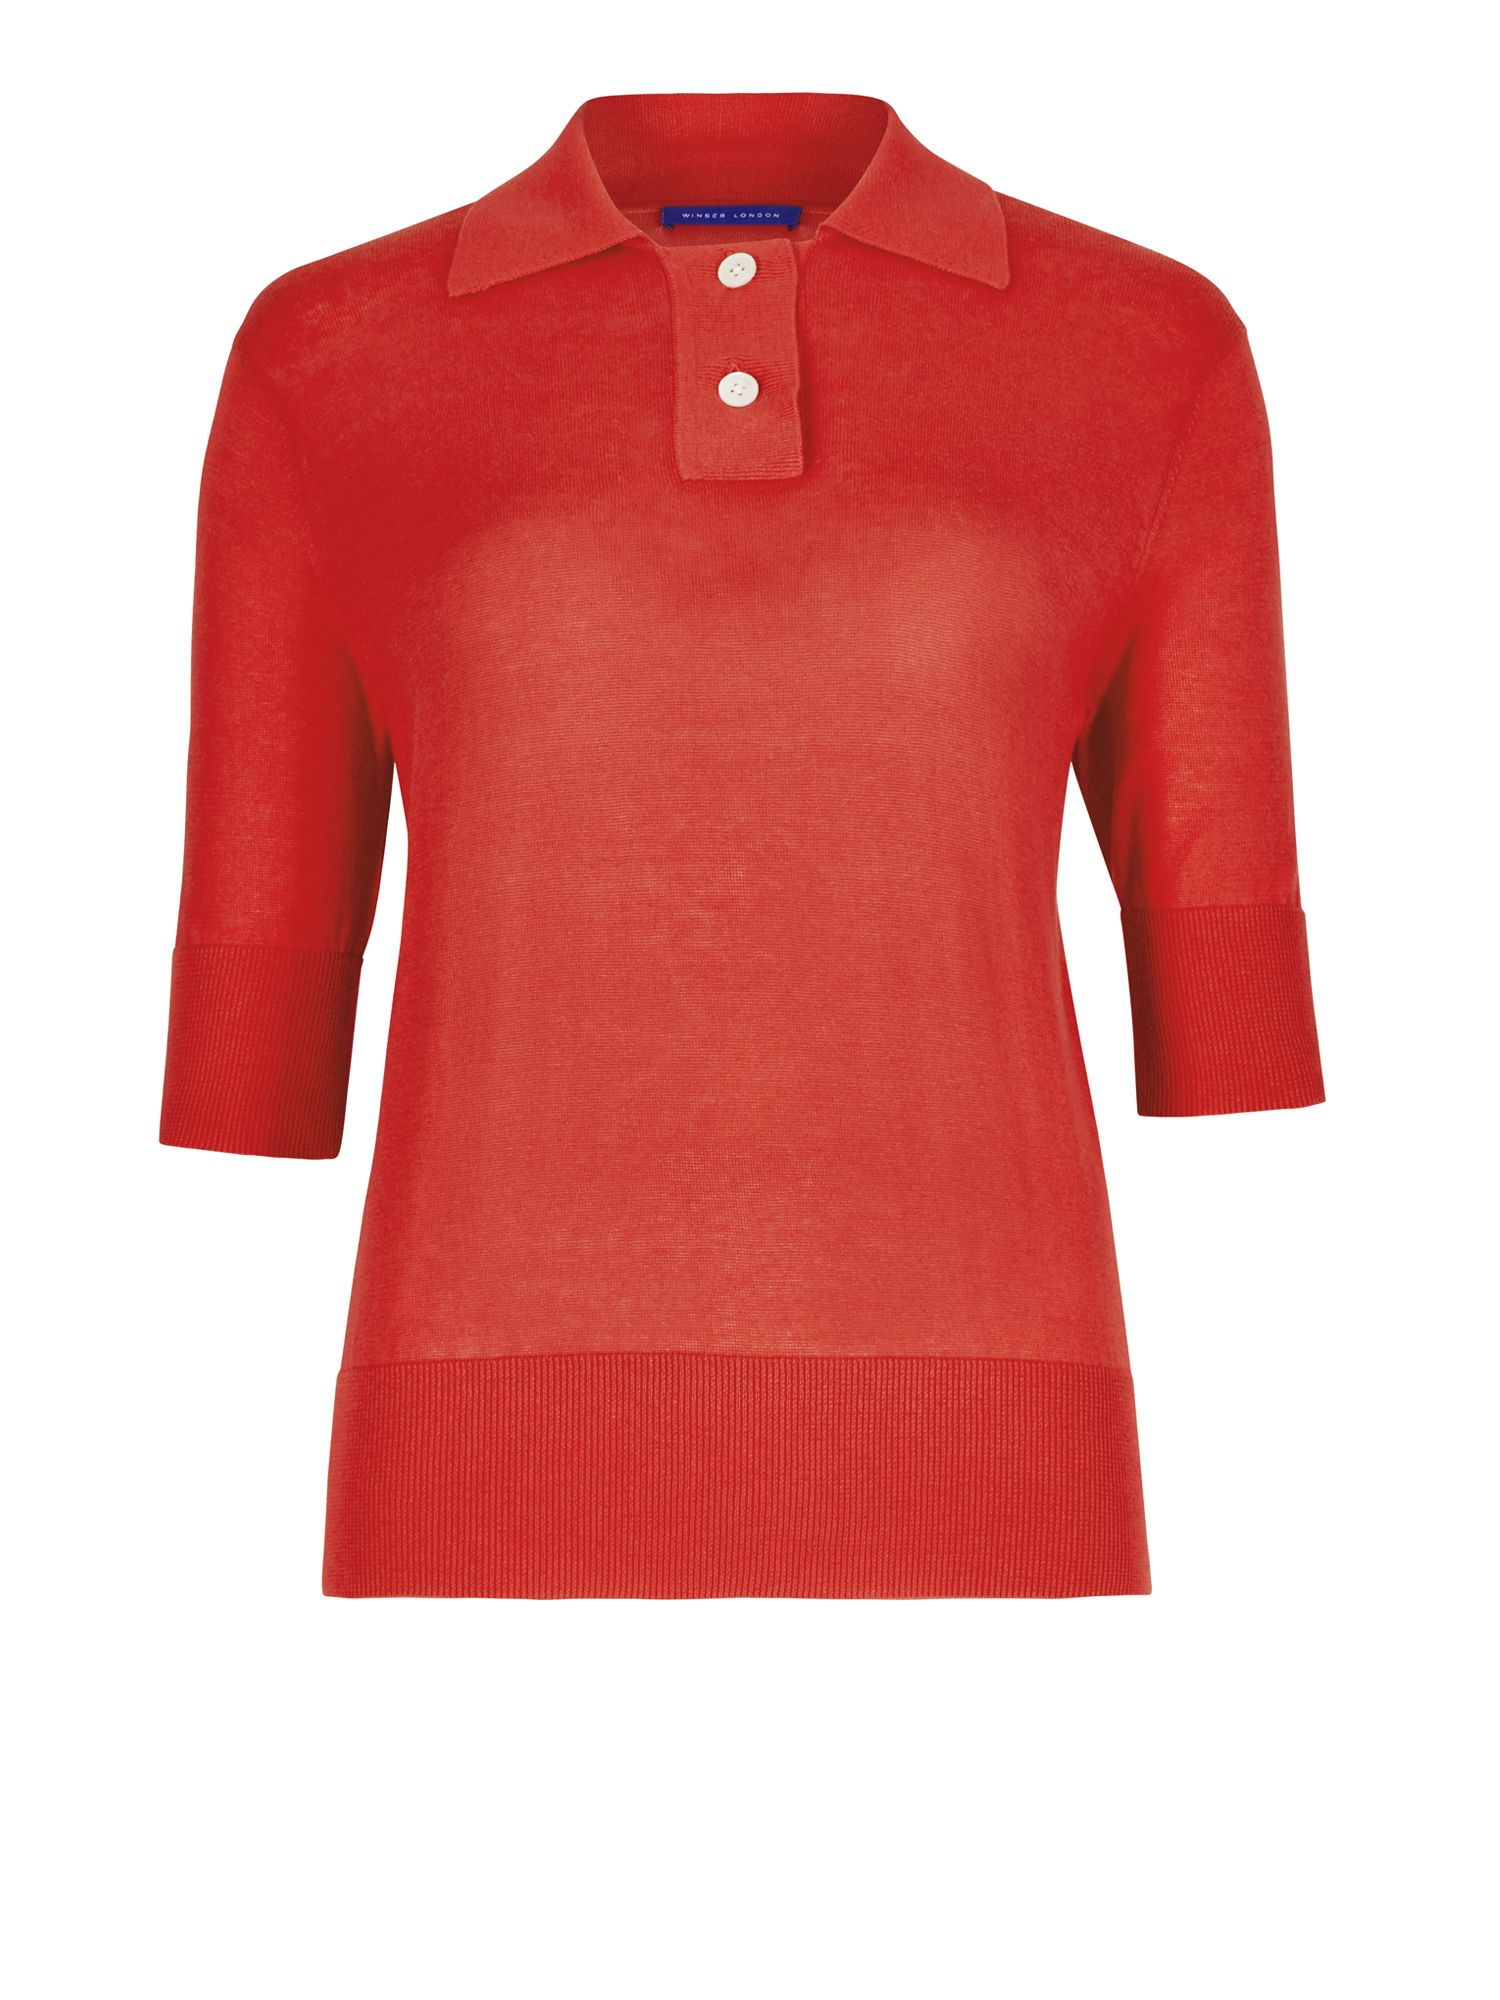 Winser London Silk Cotton Polo Top, Red